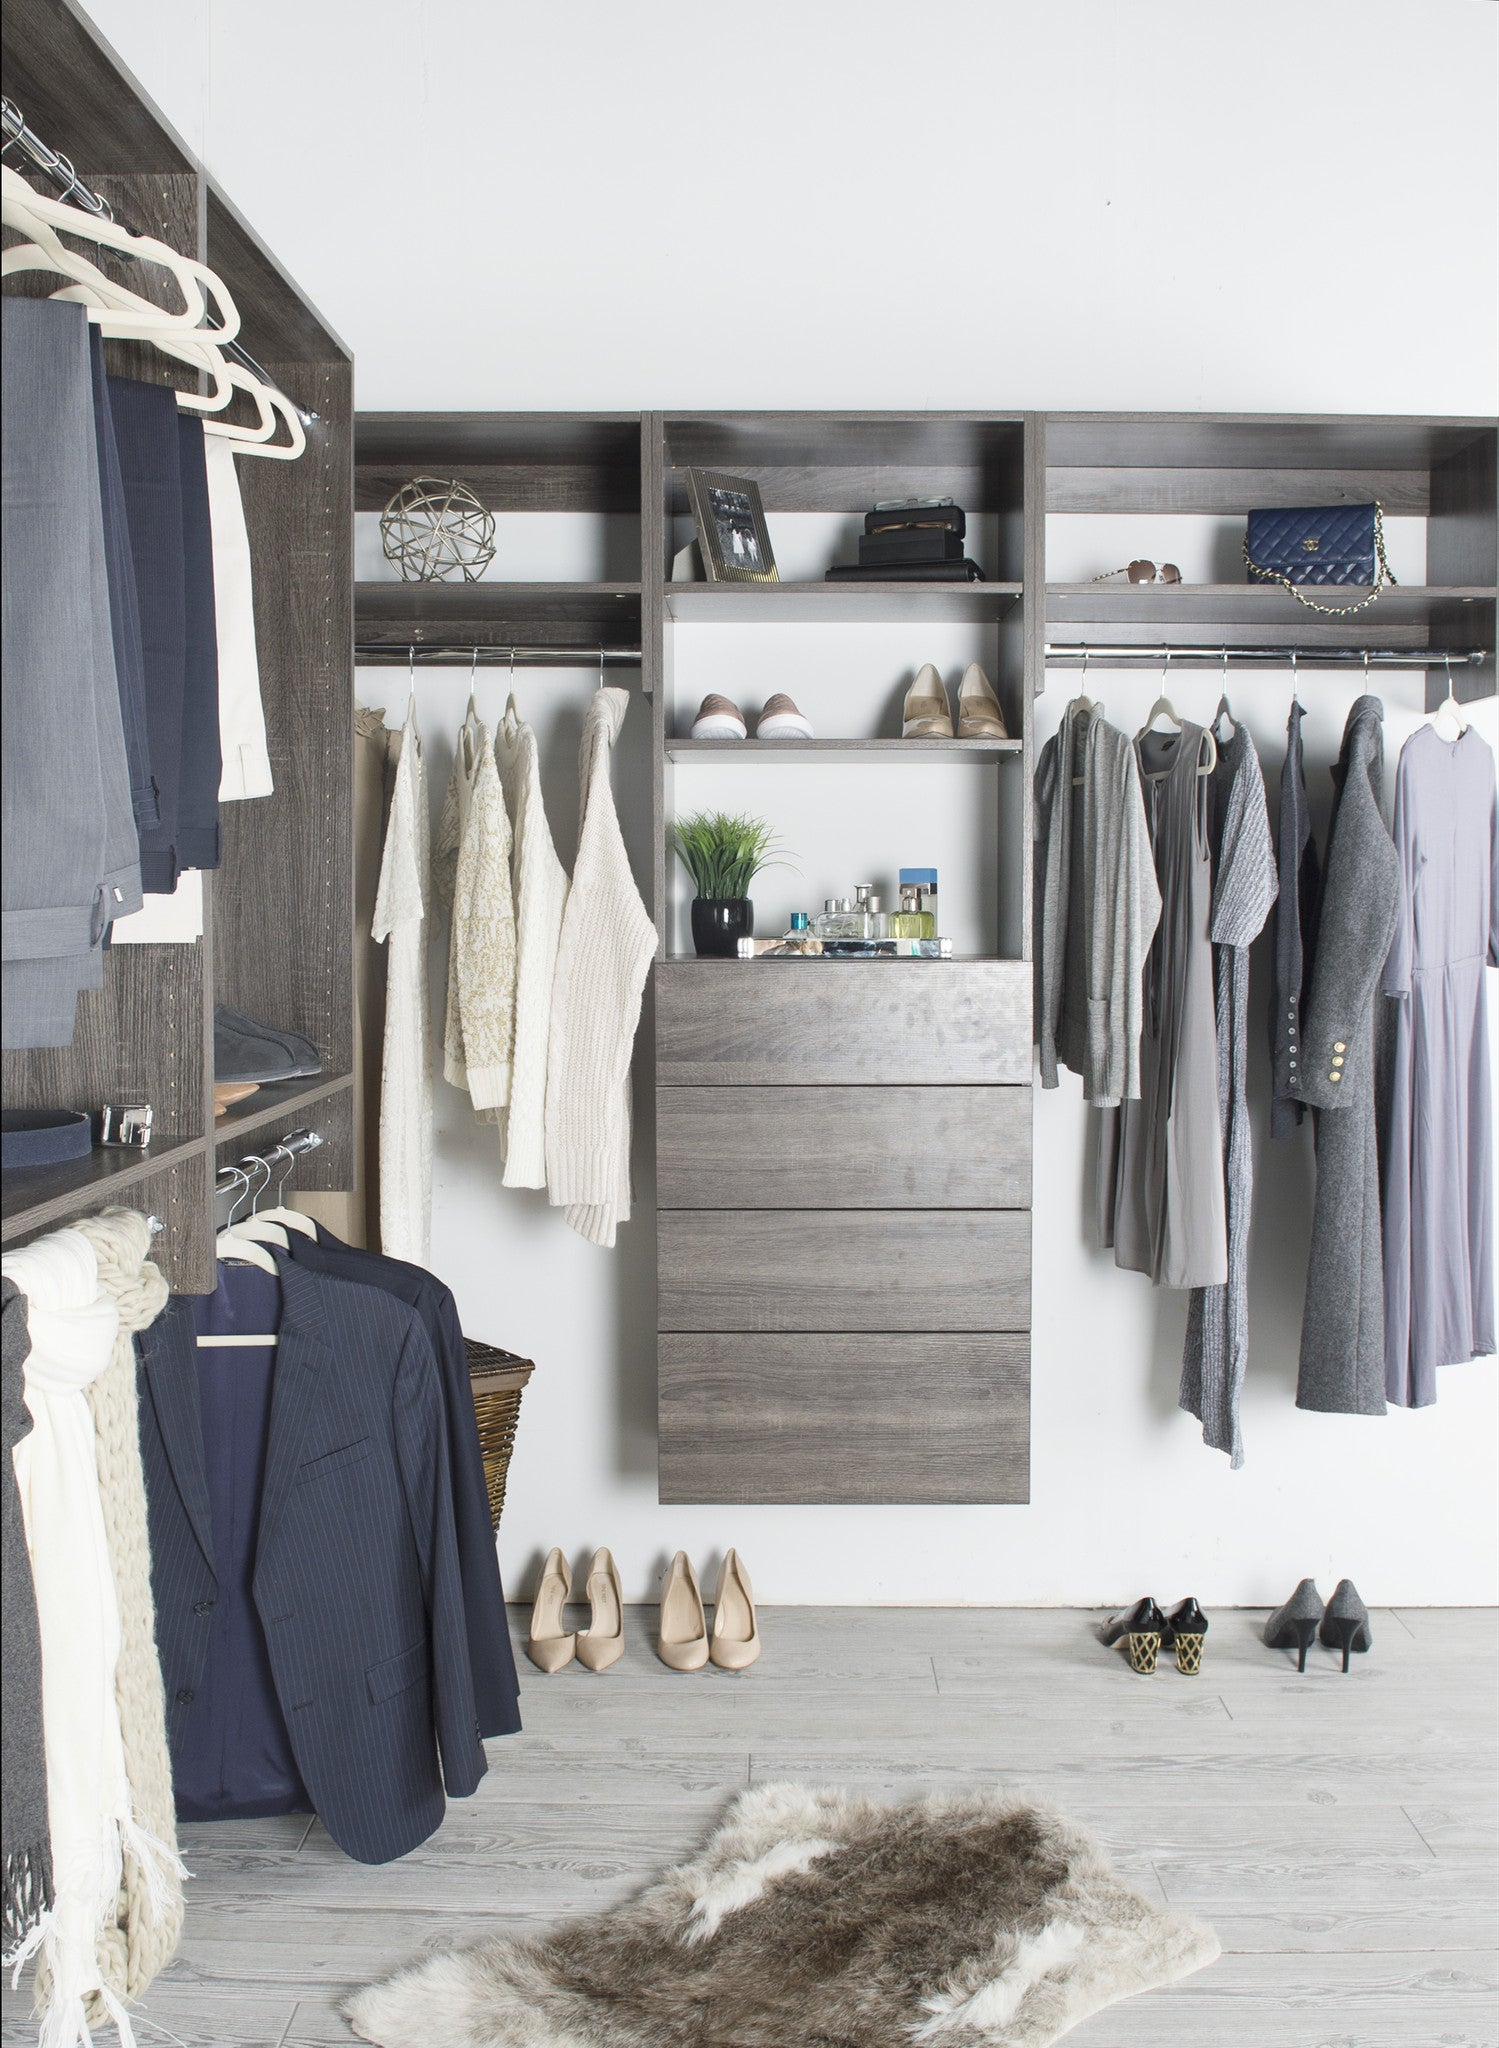 Press: Modular Closets Driftwood Grey Closet Systems (Woodworking Network,  April 7, 2017)